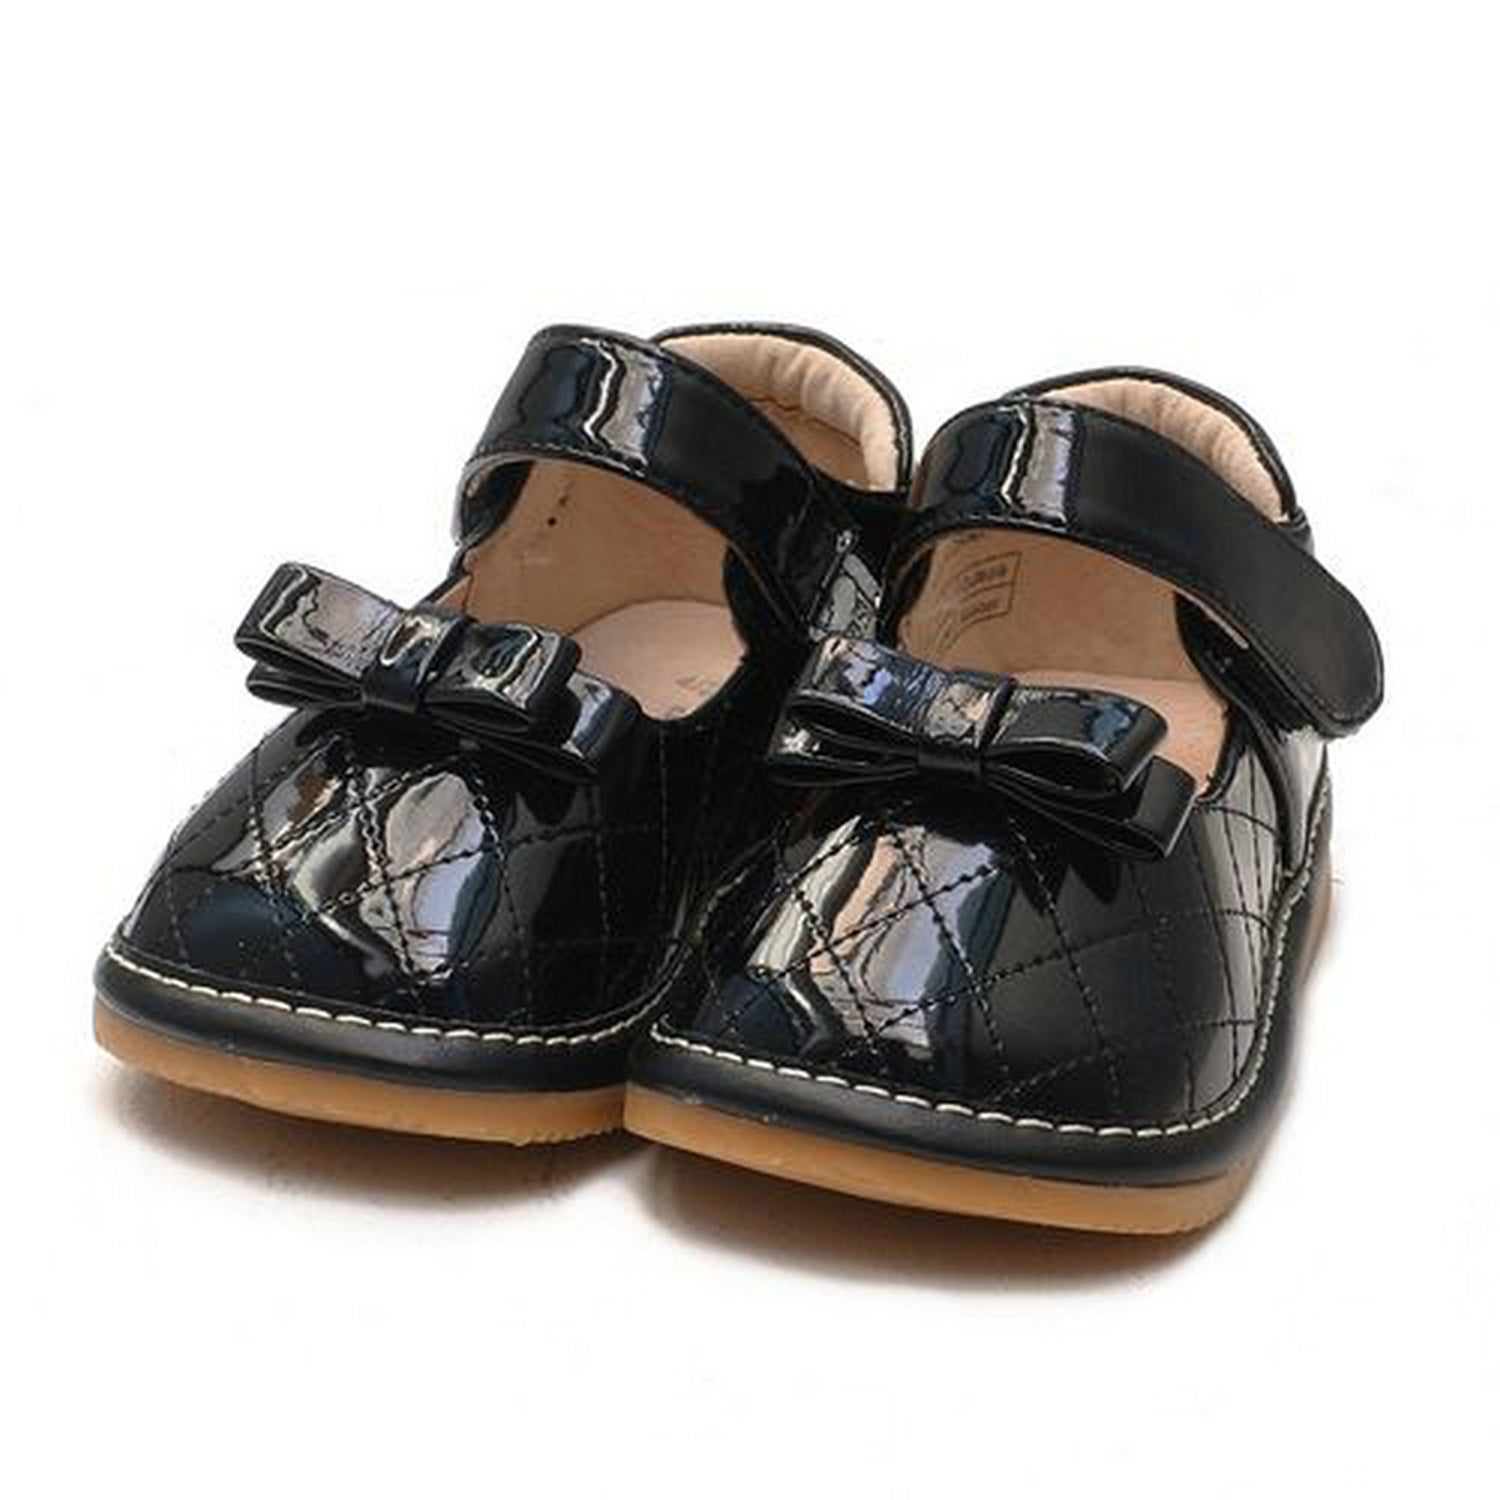 blue toddler sq series black patent leather